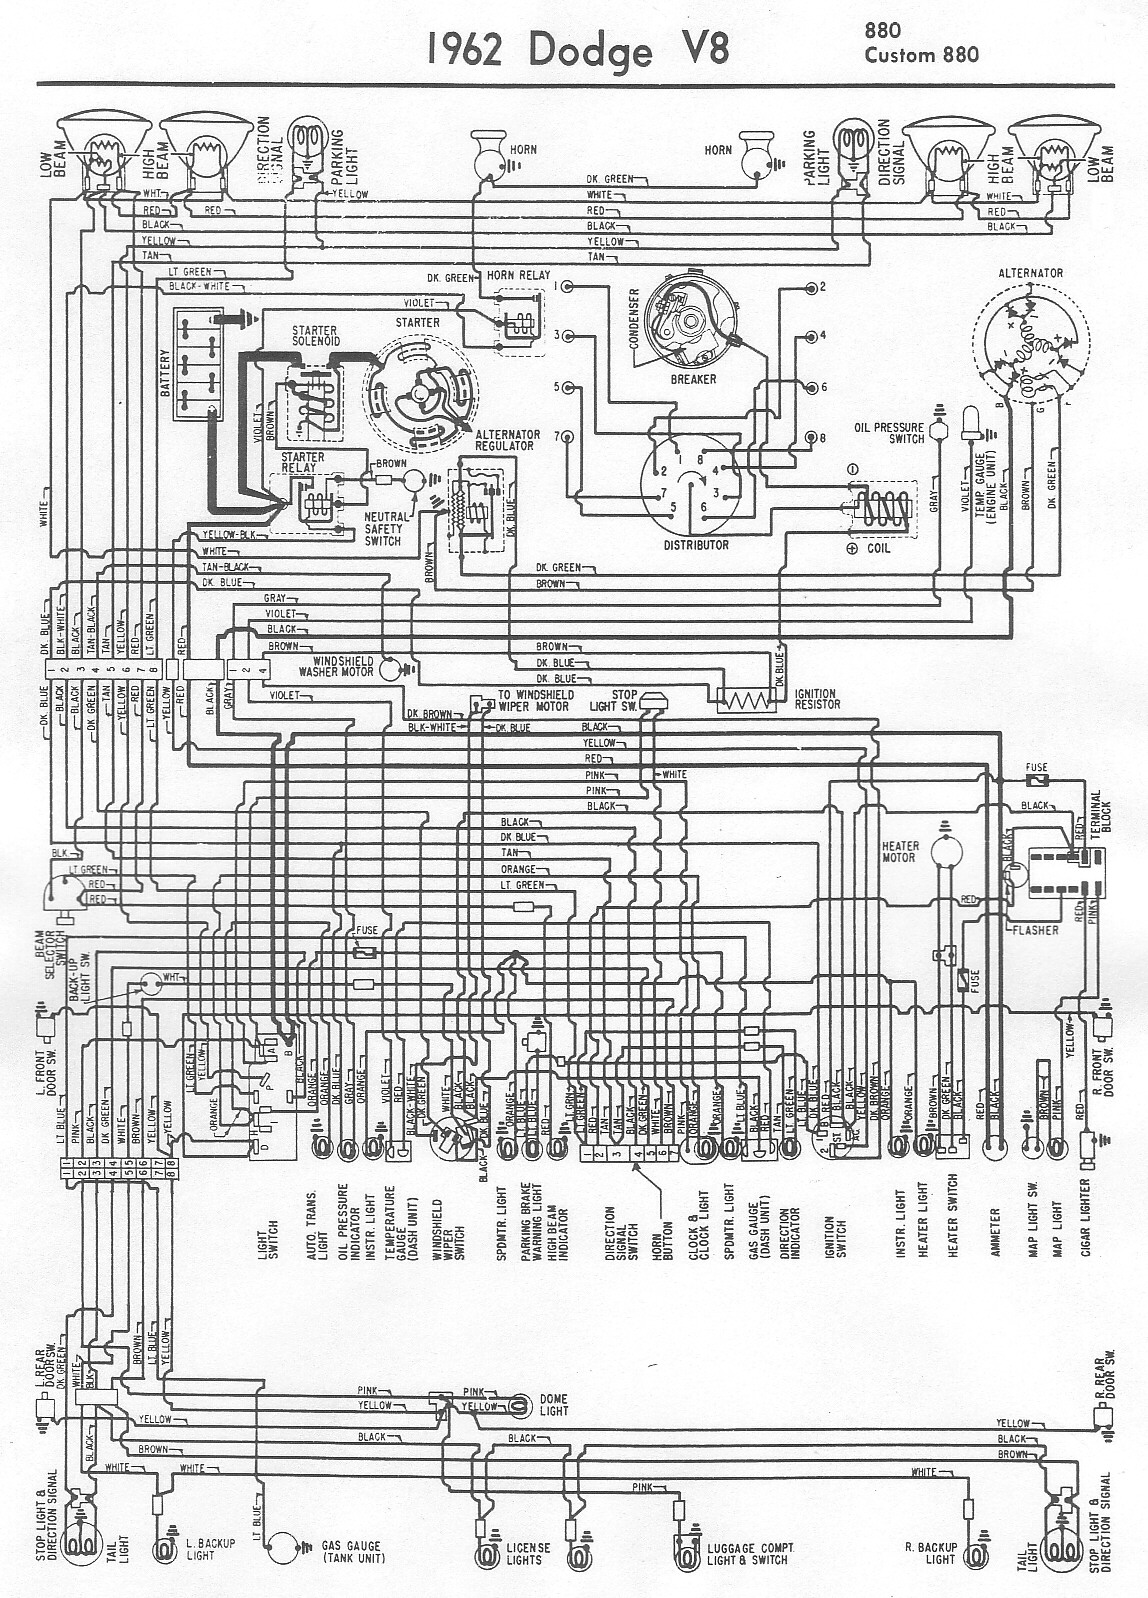 1962 Fiat Wiring Diagram Basic Guide 1973 1300 Engine Free Auto Dodge 880 Rh Autowiringdiagram Blogspot Com